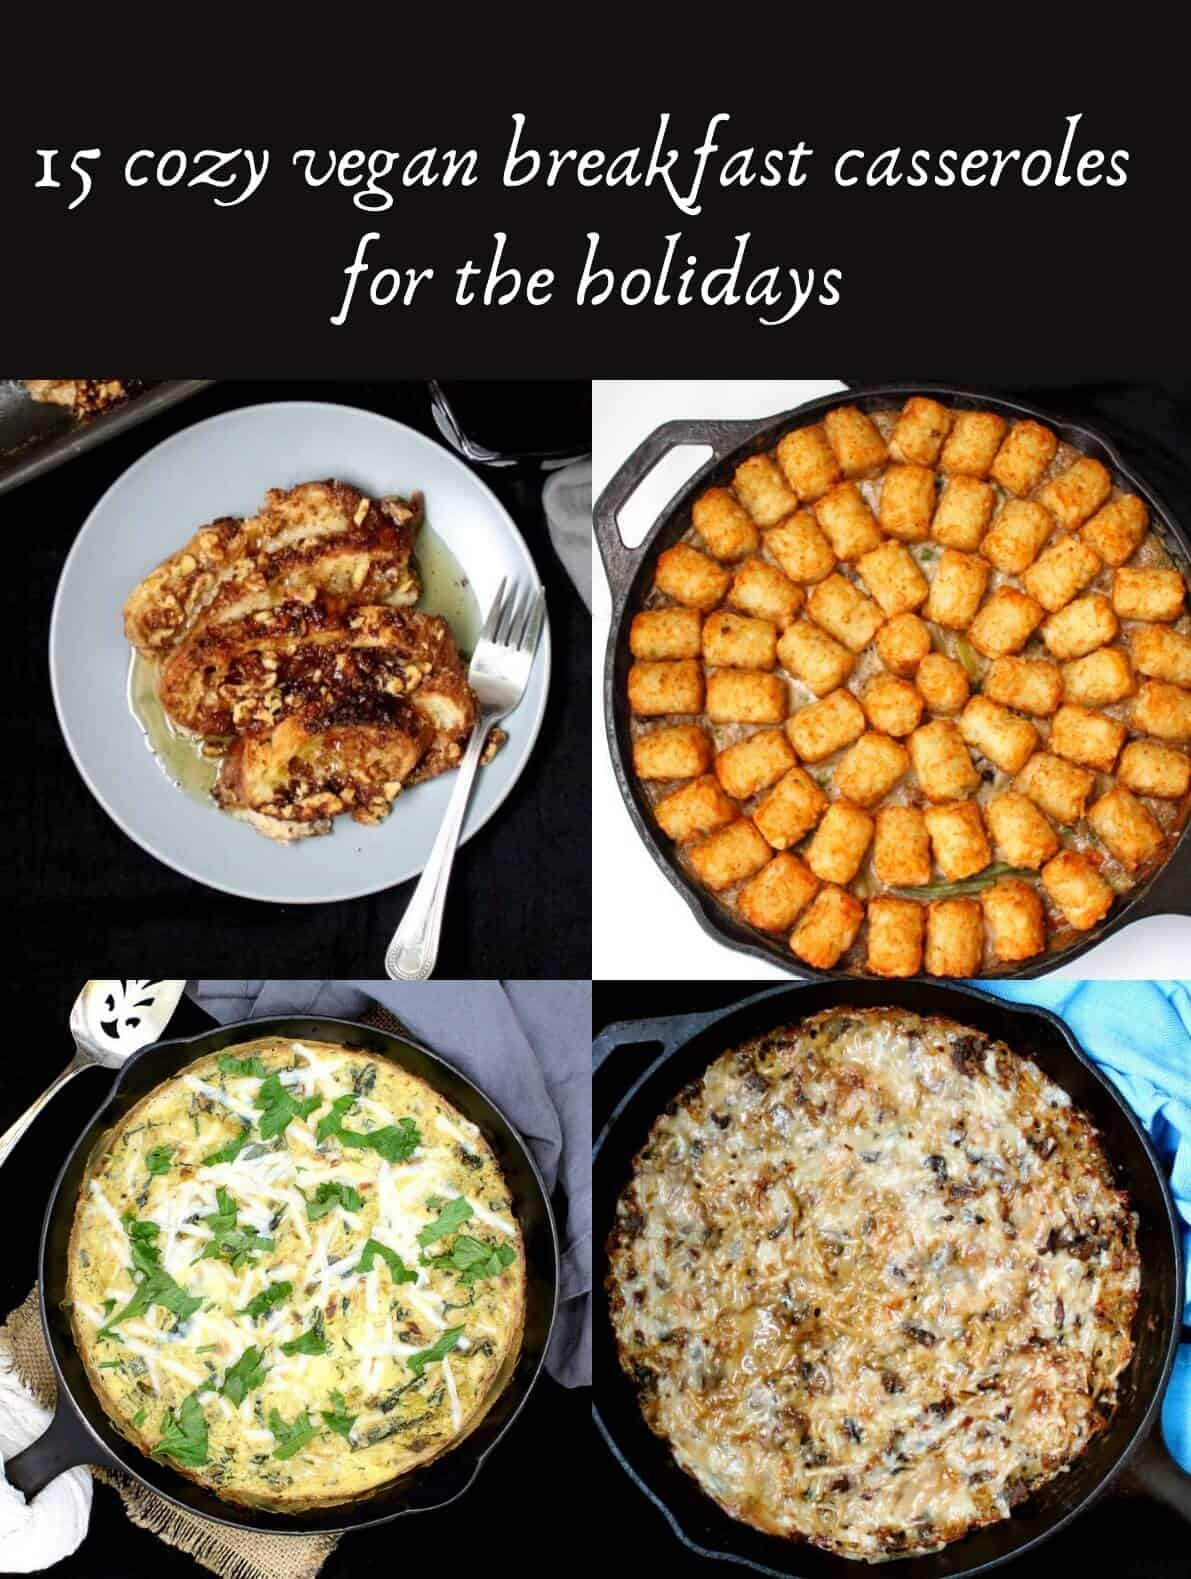 Pin for 15 cozy vegan breakfast casseroles for the holidays featuring photos of french toast casserole, tater tot casserole, a leek frittata and hash brown casserole, all vegan.